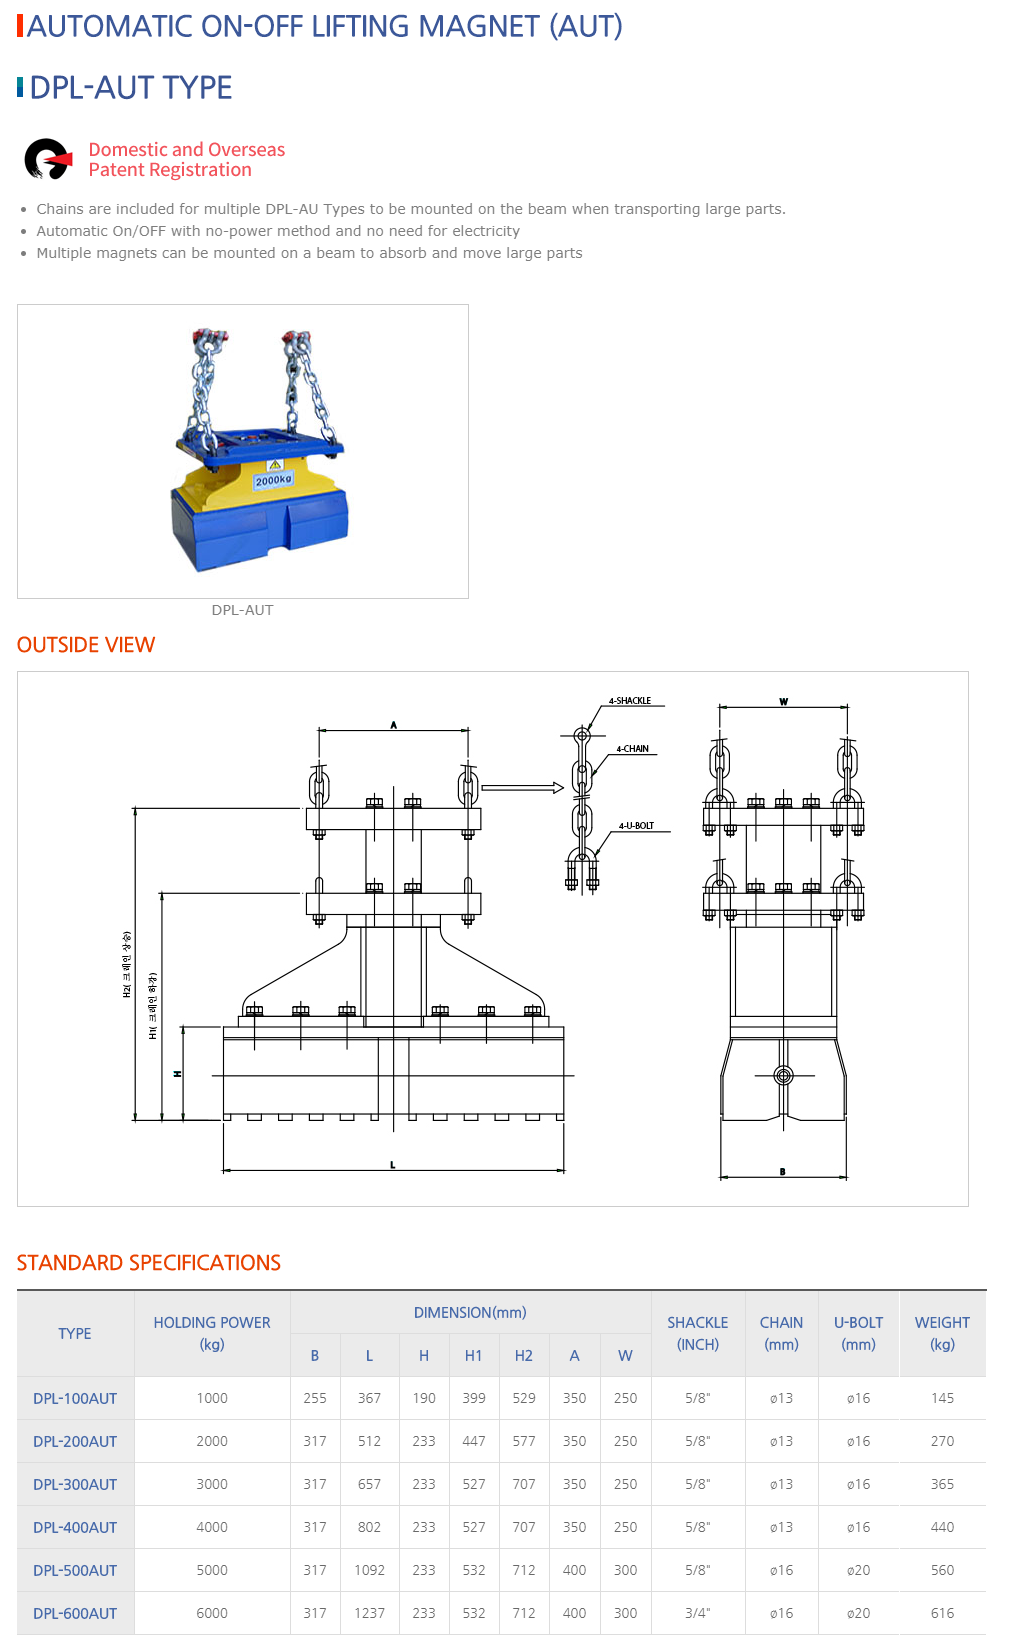 DAESUNG MARGNET Automatic On-Off Lifting Magnet (AUT) DPL-AUT Type